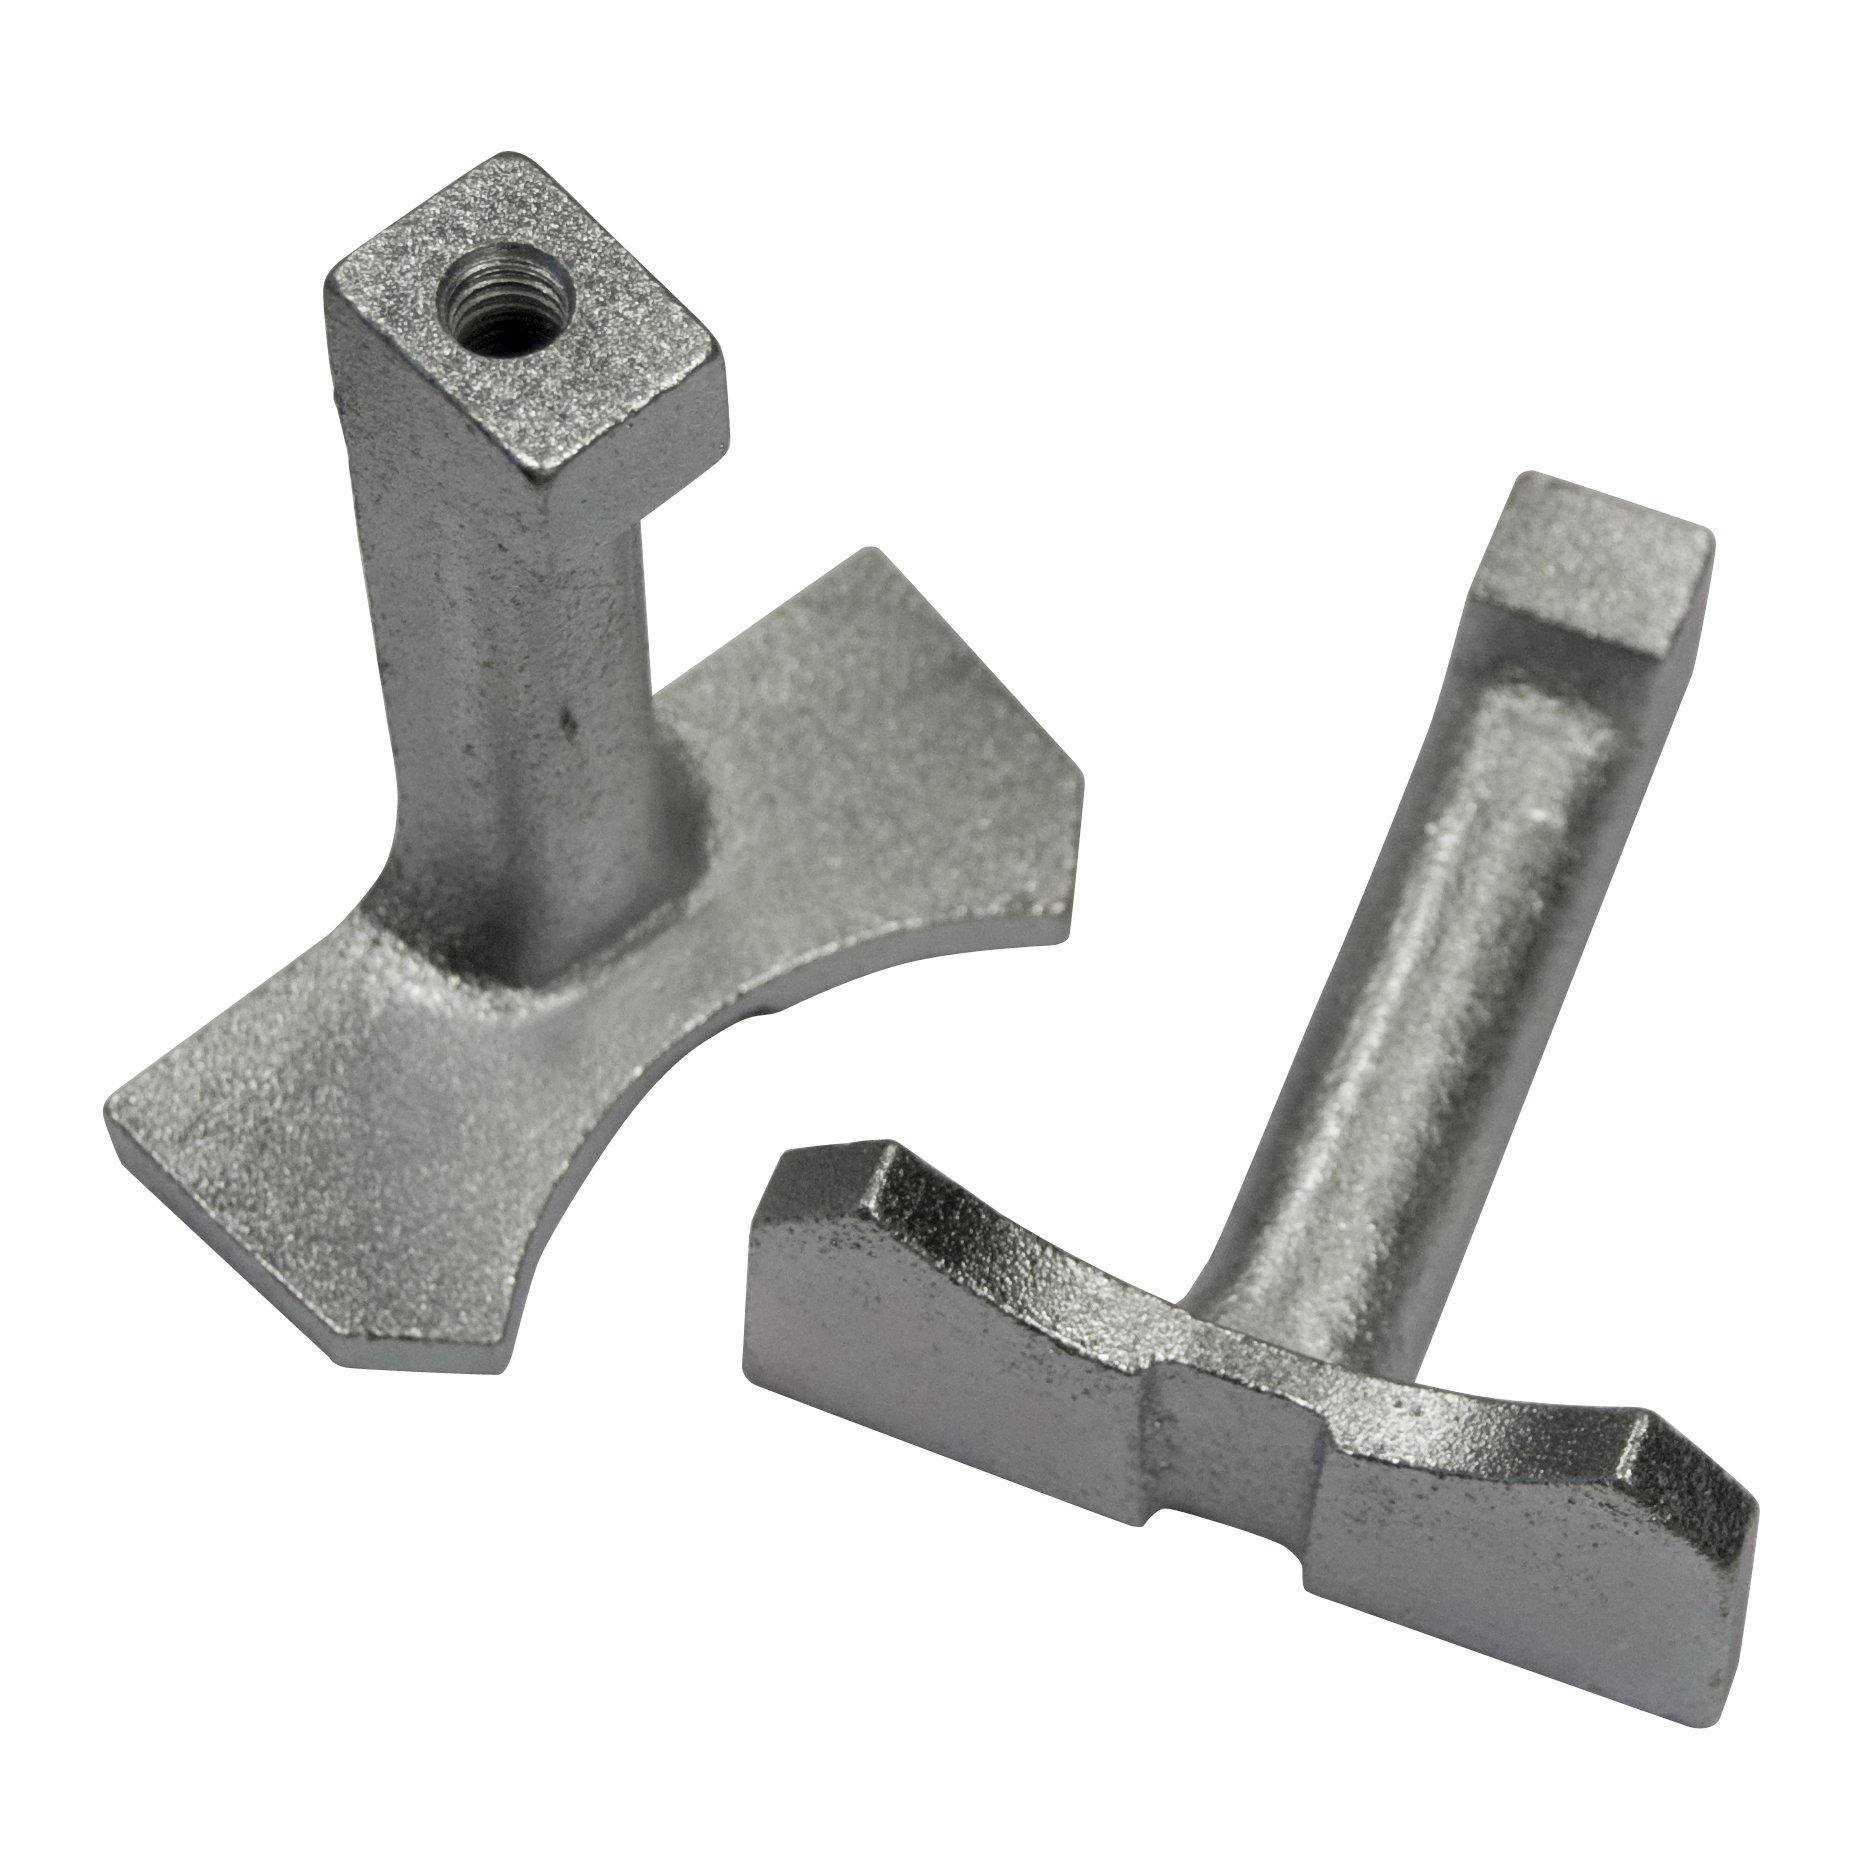 OEMTOOLS 27008  Clutch Puller Jaws